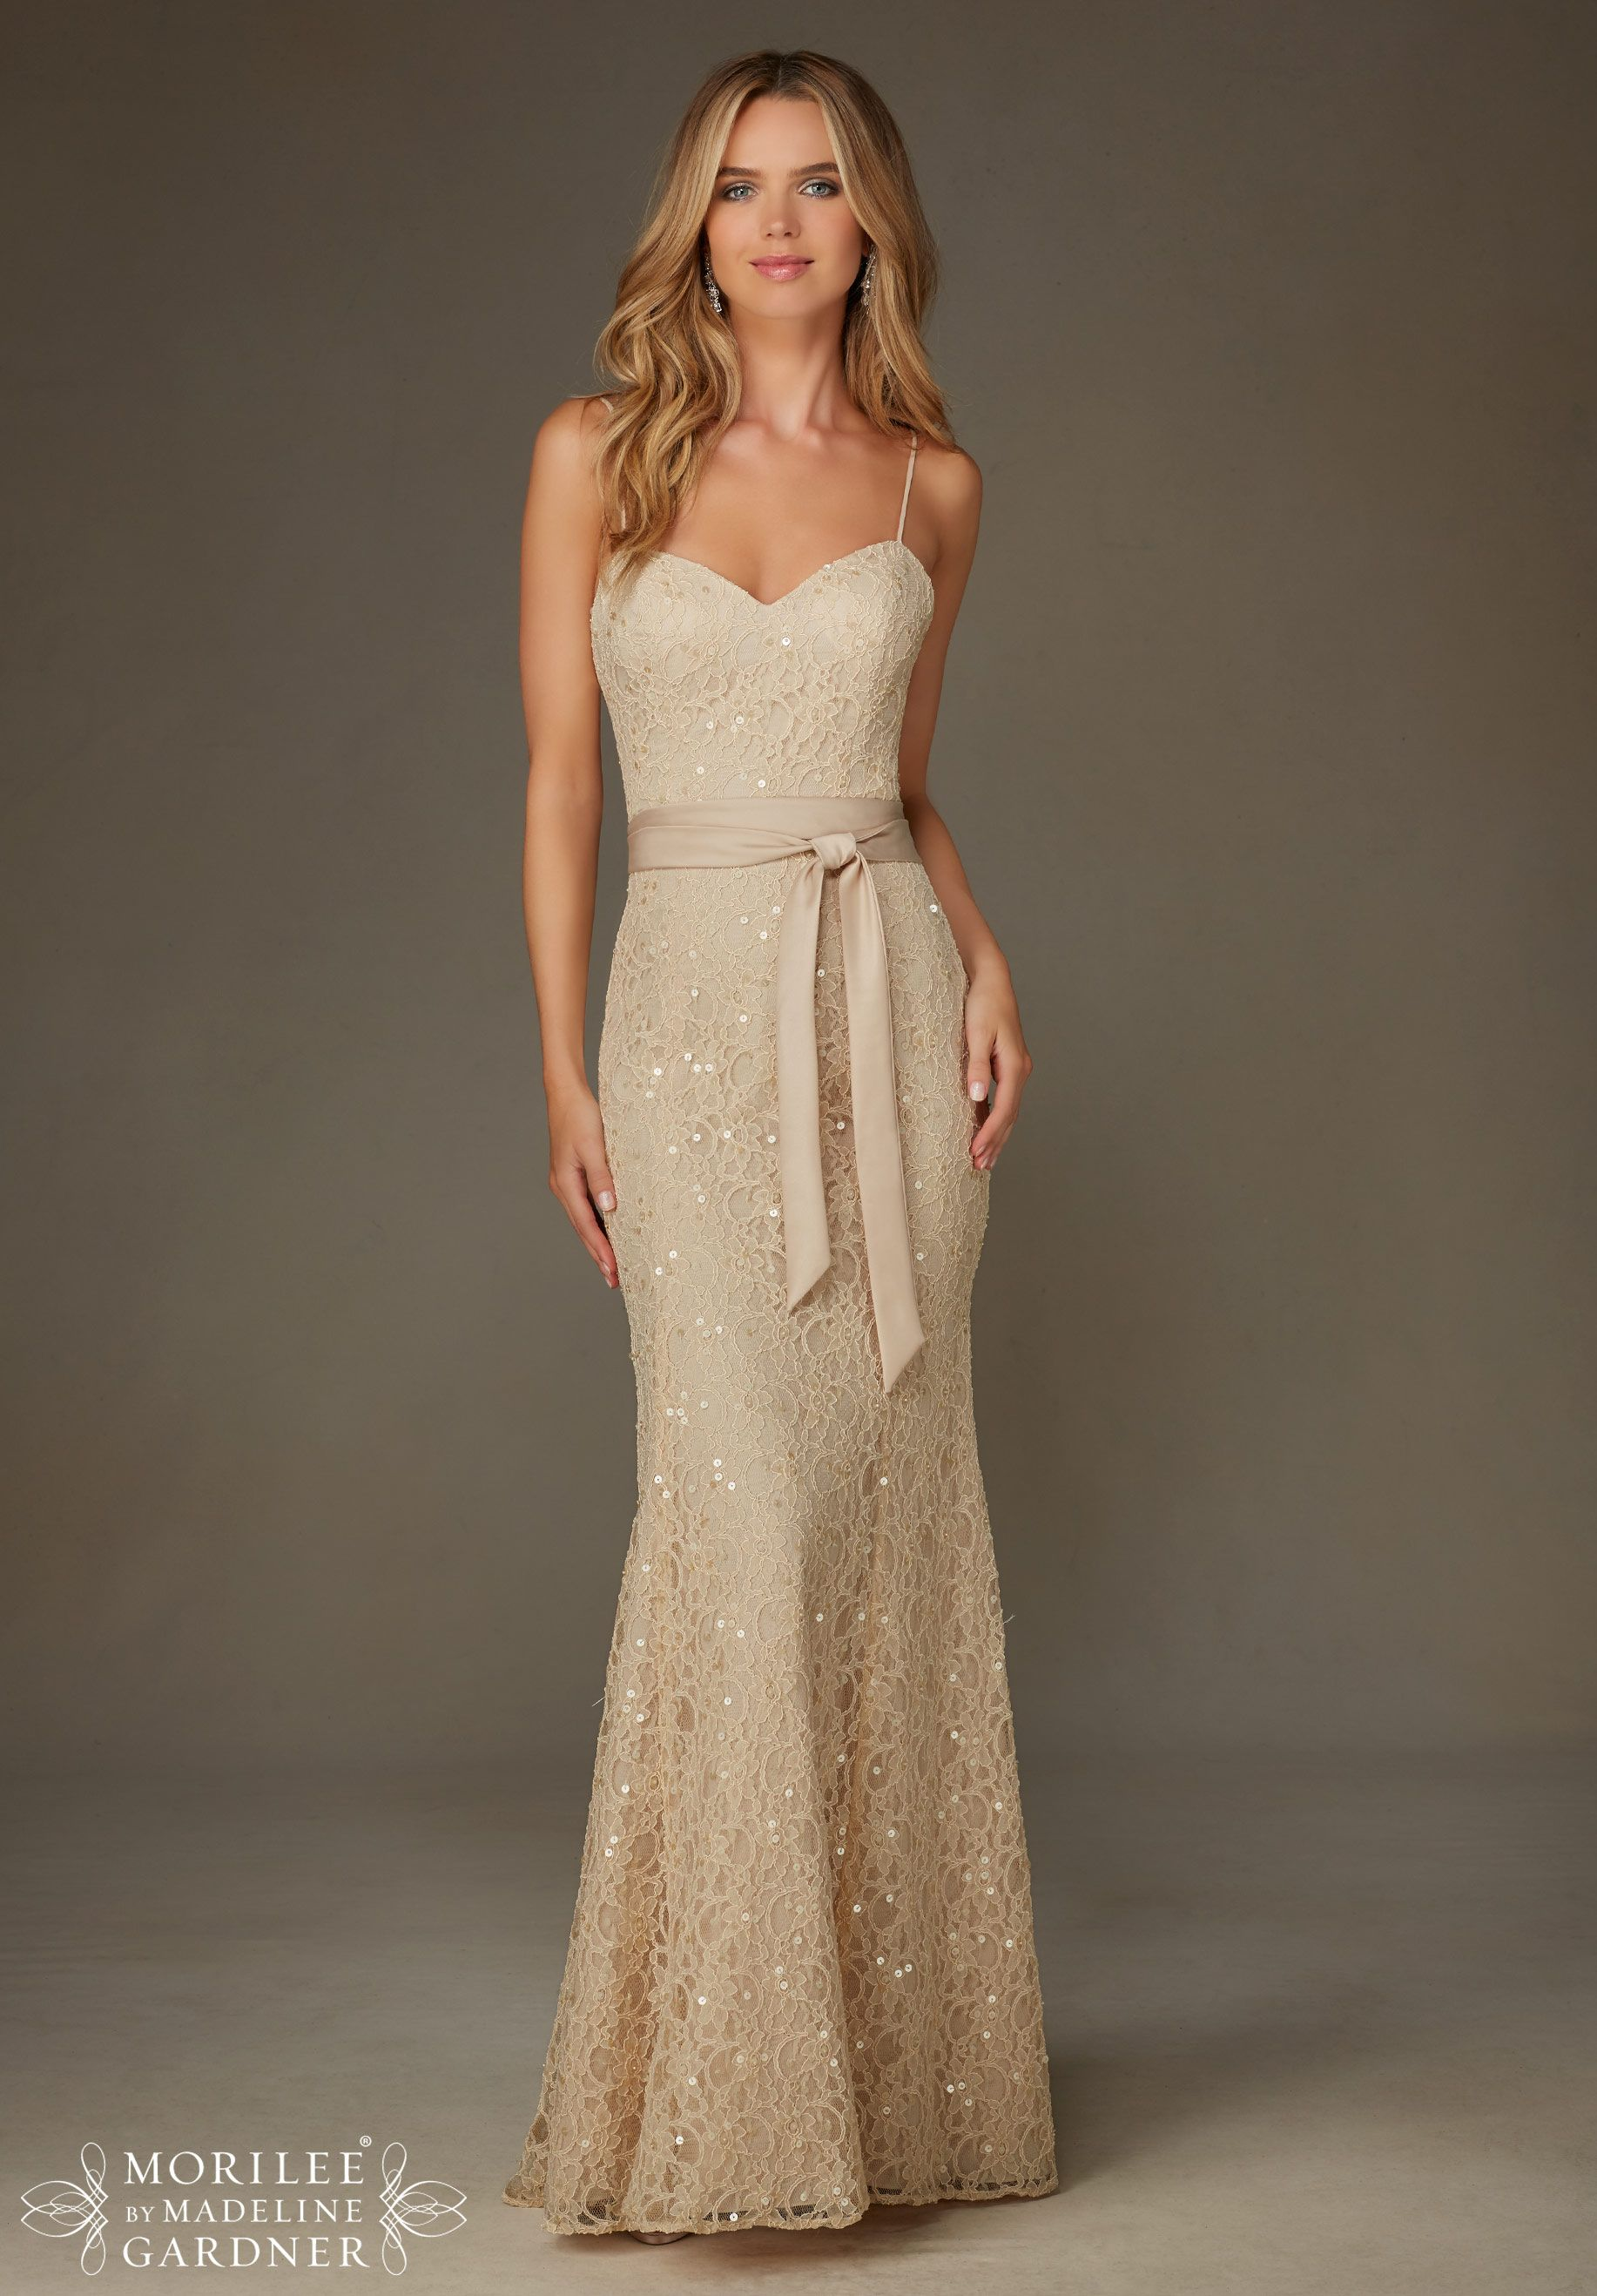 Bridesmaids Dresses Beaded Lace Available In All Mori Lee Solid Colors